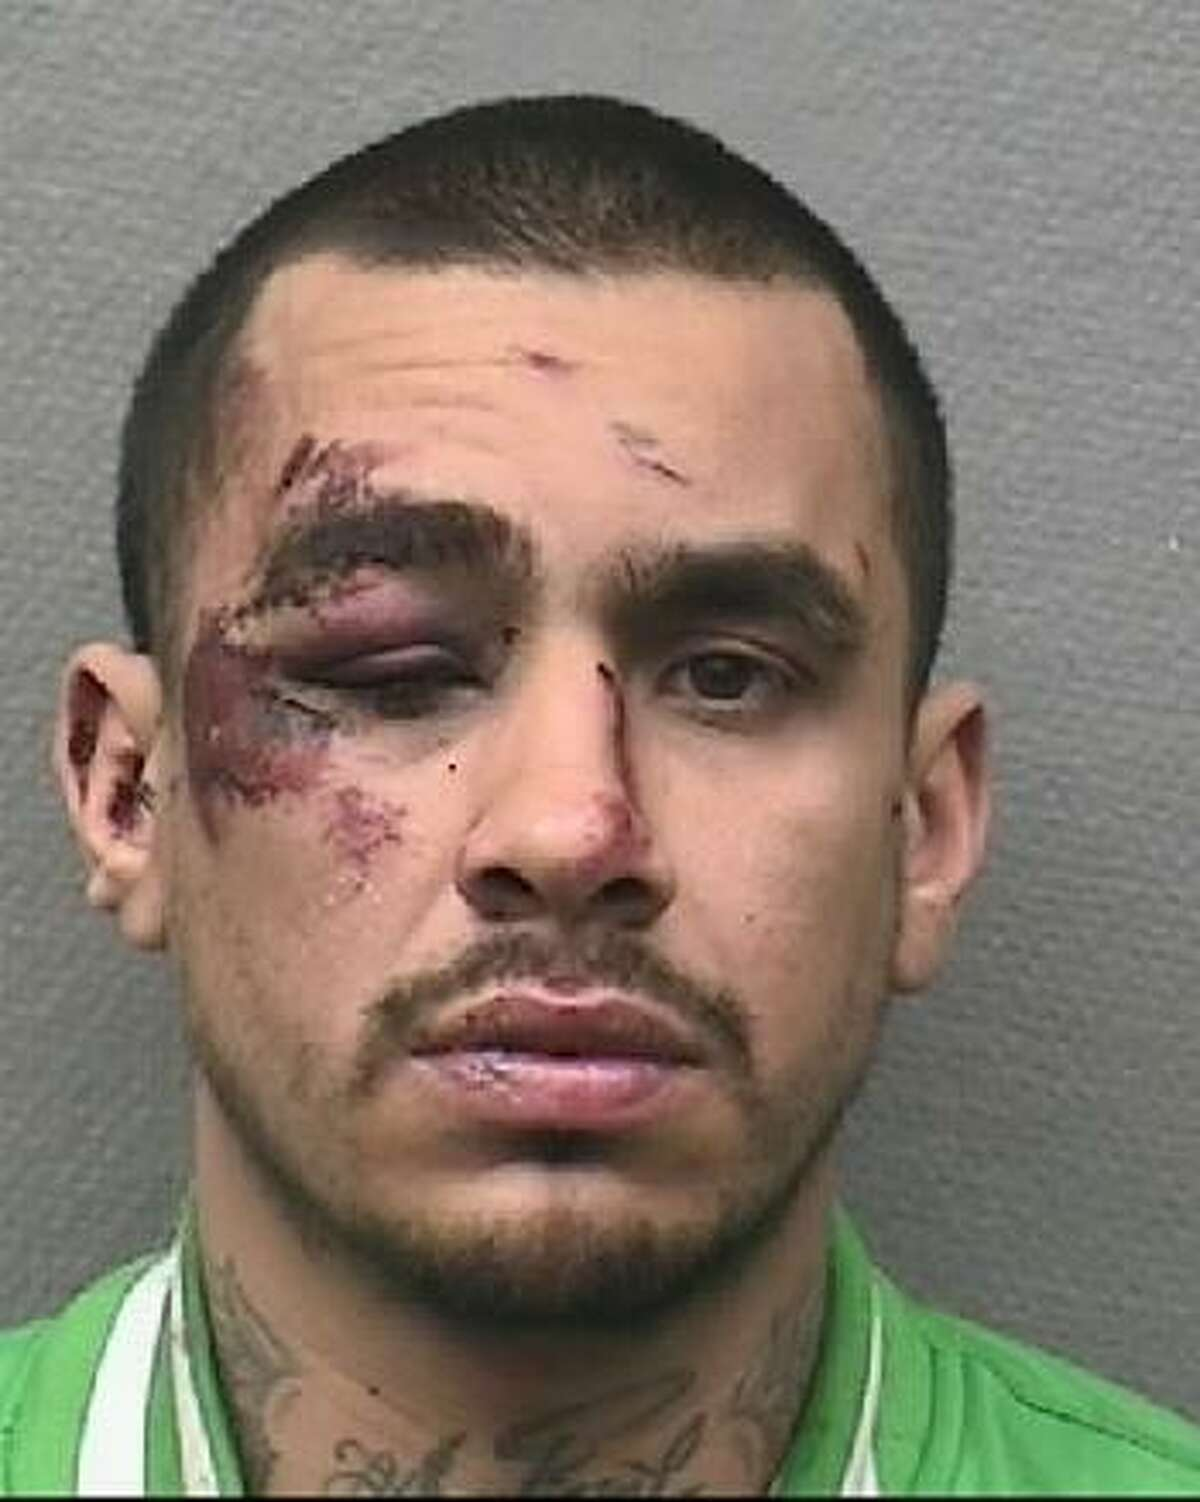 Raul Saenz III, 31, has been charged with two counts of intoxicated assault for his involvement in the accident in the 600 block of East Crosstimbers just after 6 a.m. Wednesday. The silver Chevrolet Aveo he was driving collided with a gold Ford van, with Saenz and his passenger both ejected from the vehicle. The woman, aged 47, died on Christmas Day from her injuries sustained in the crash that also saw two other persons in the other vehicle transported to an area hospital with non-life-threatening injuries. Saenz was determined to be intoxicated at the time of the crash and was taken into custody.